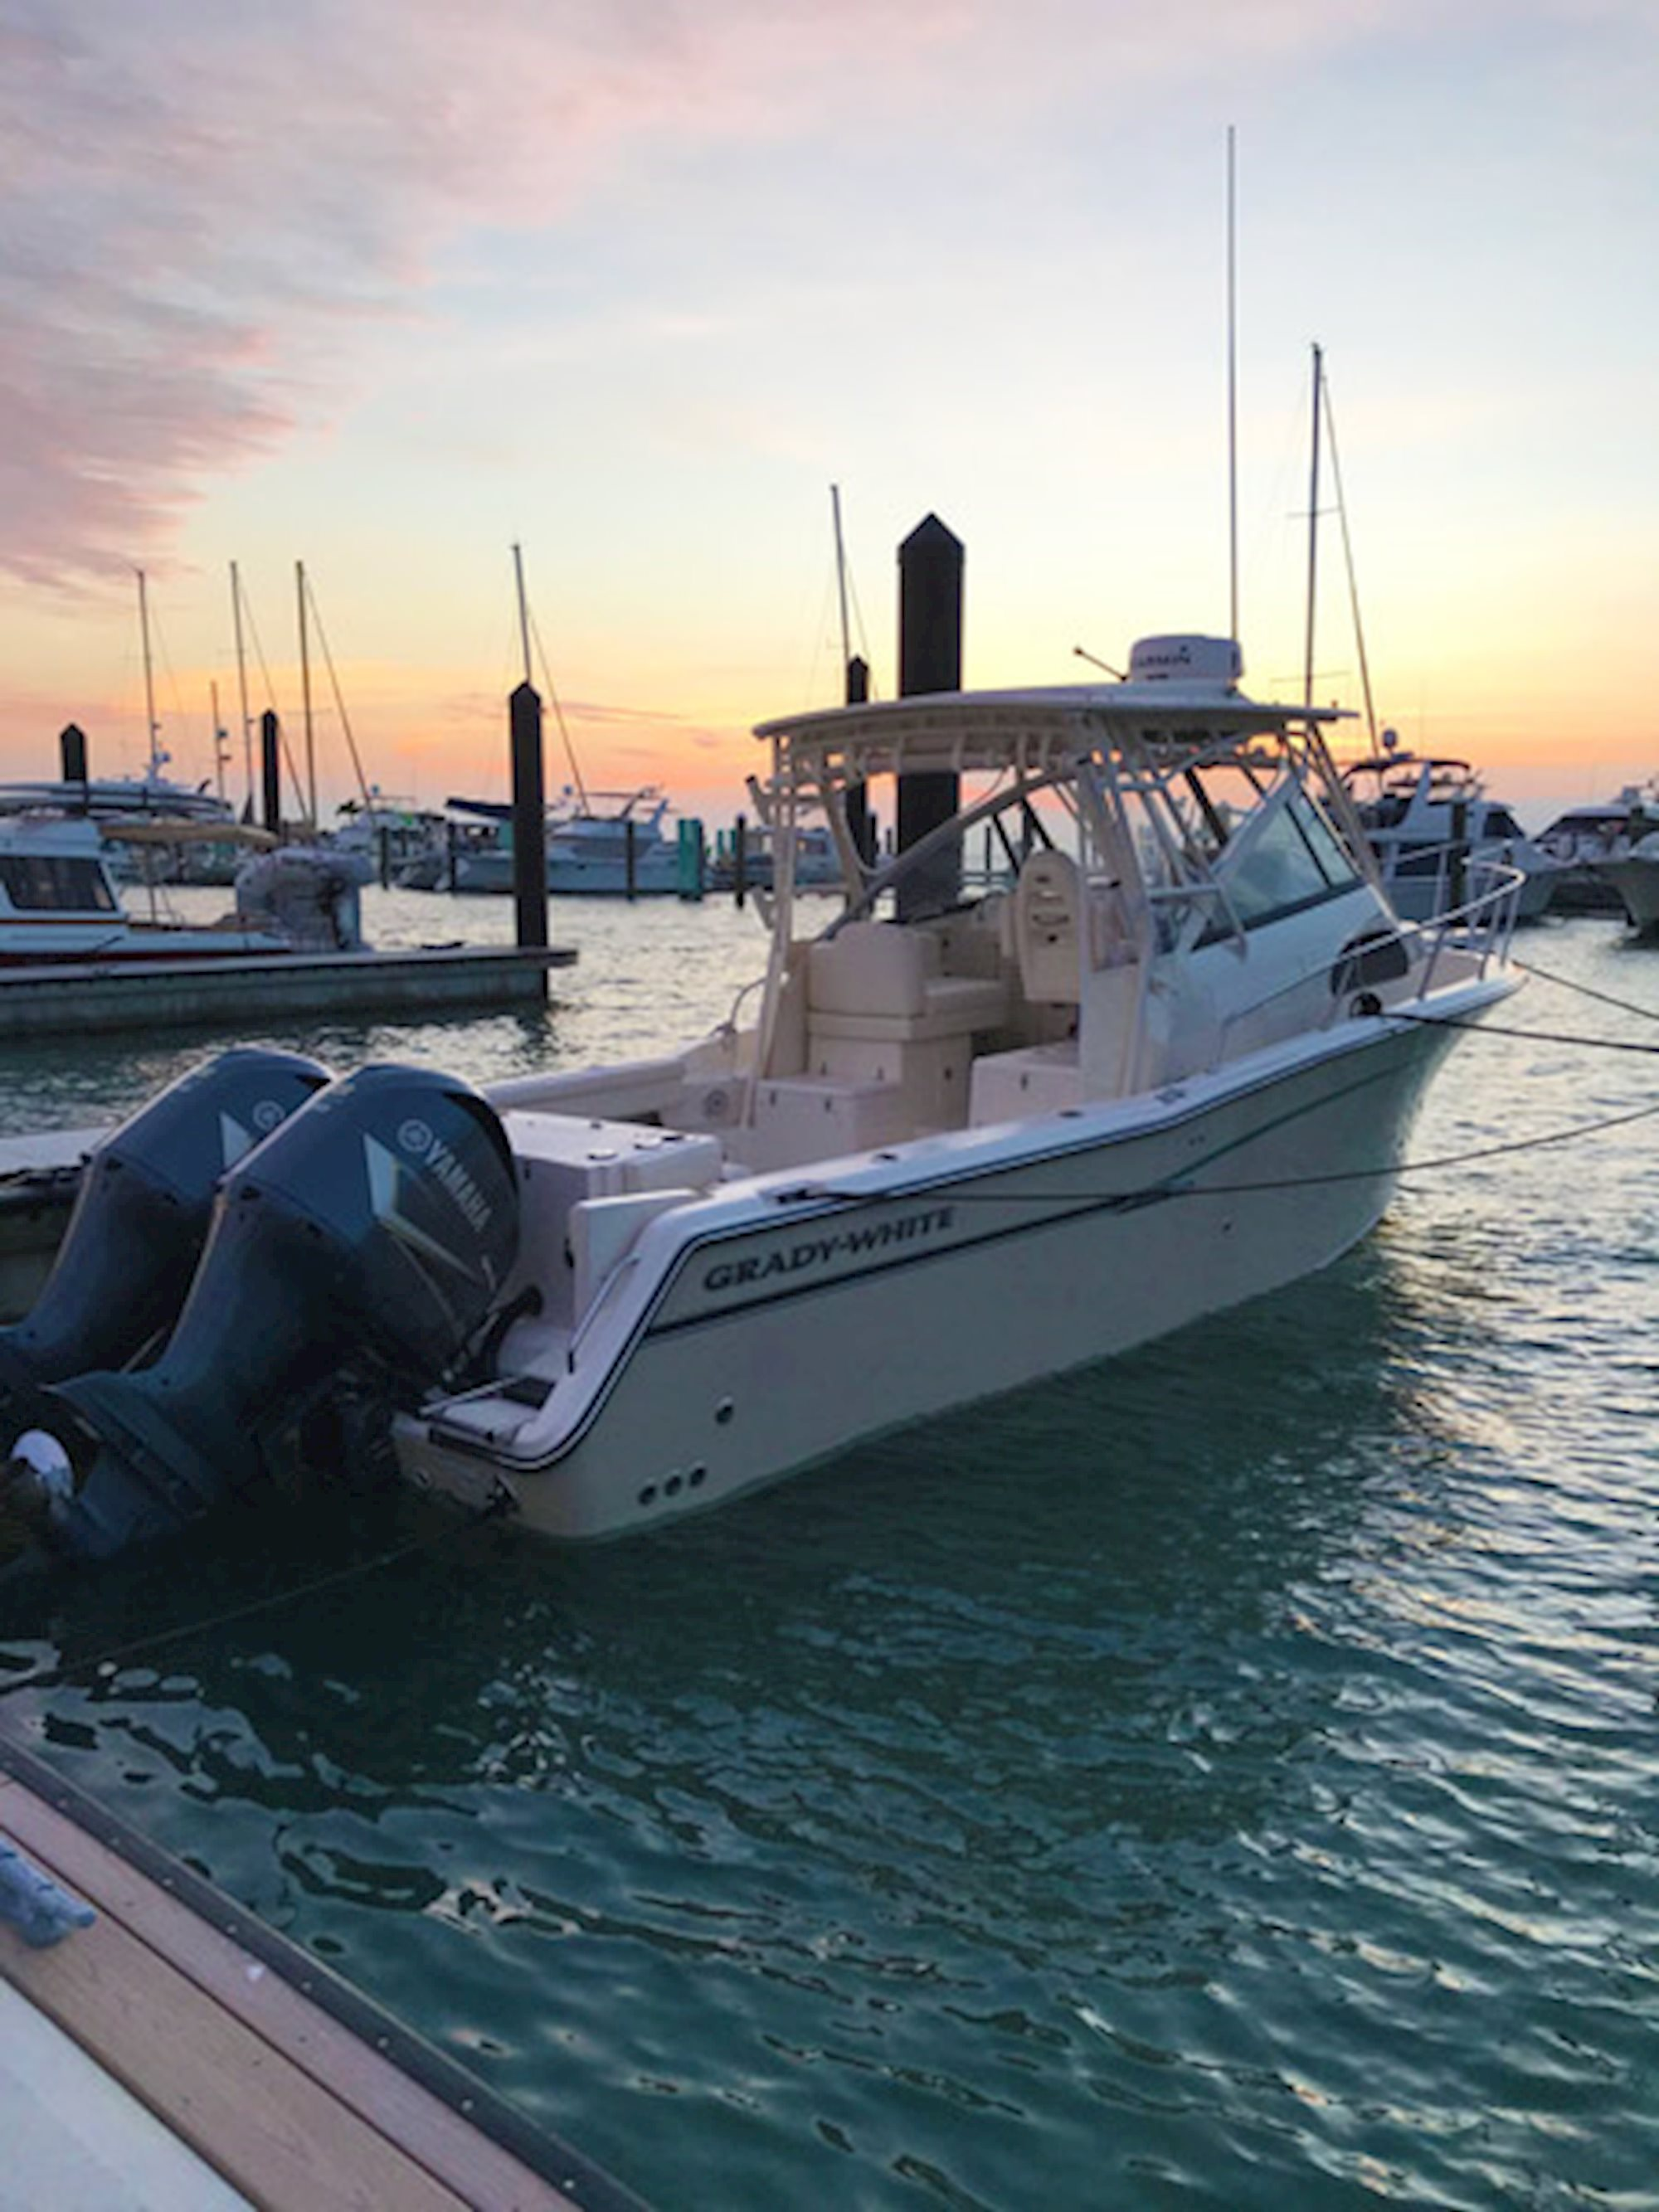 Marlin 300 owner, Bill Hayes still marvels at the beauty of a Grady-White boat.